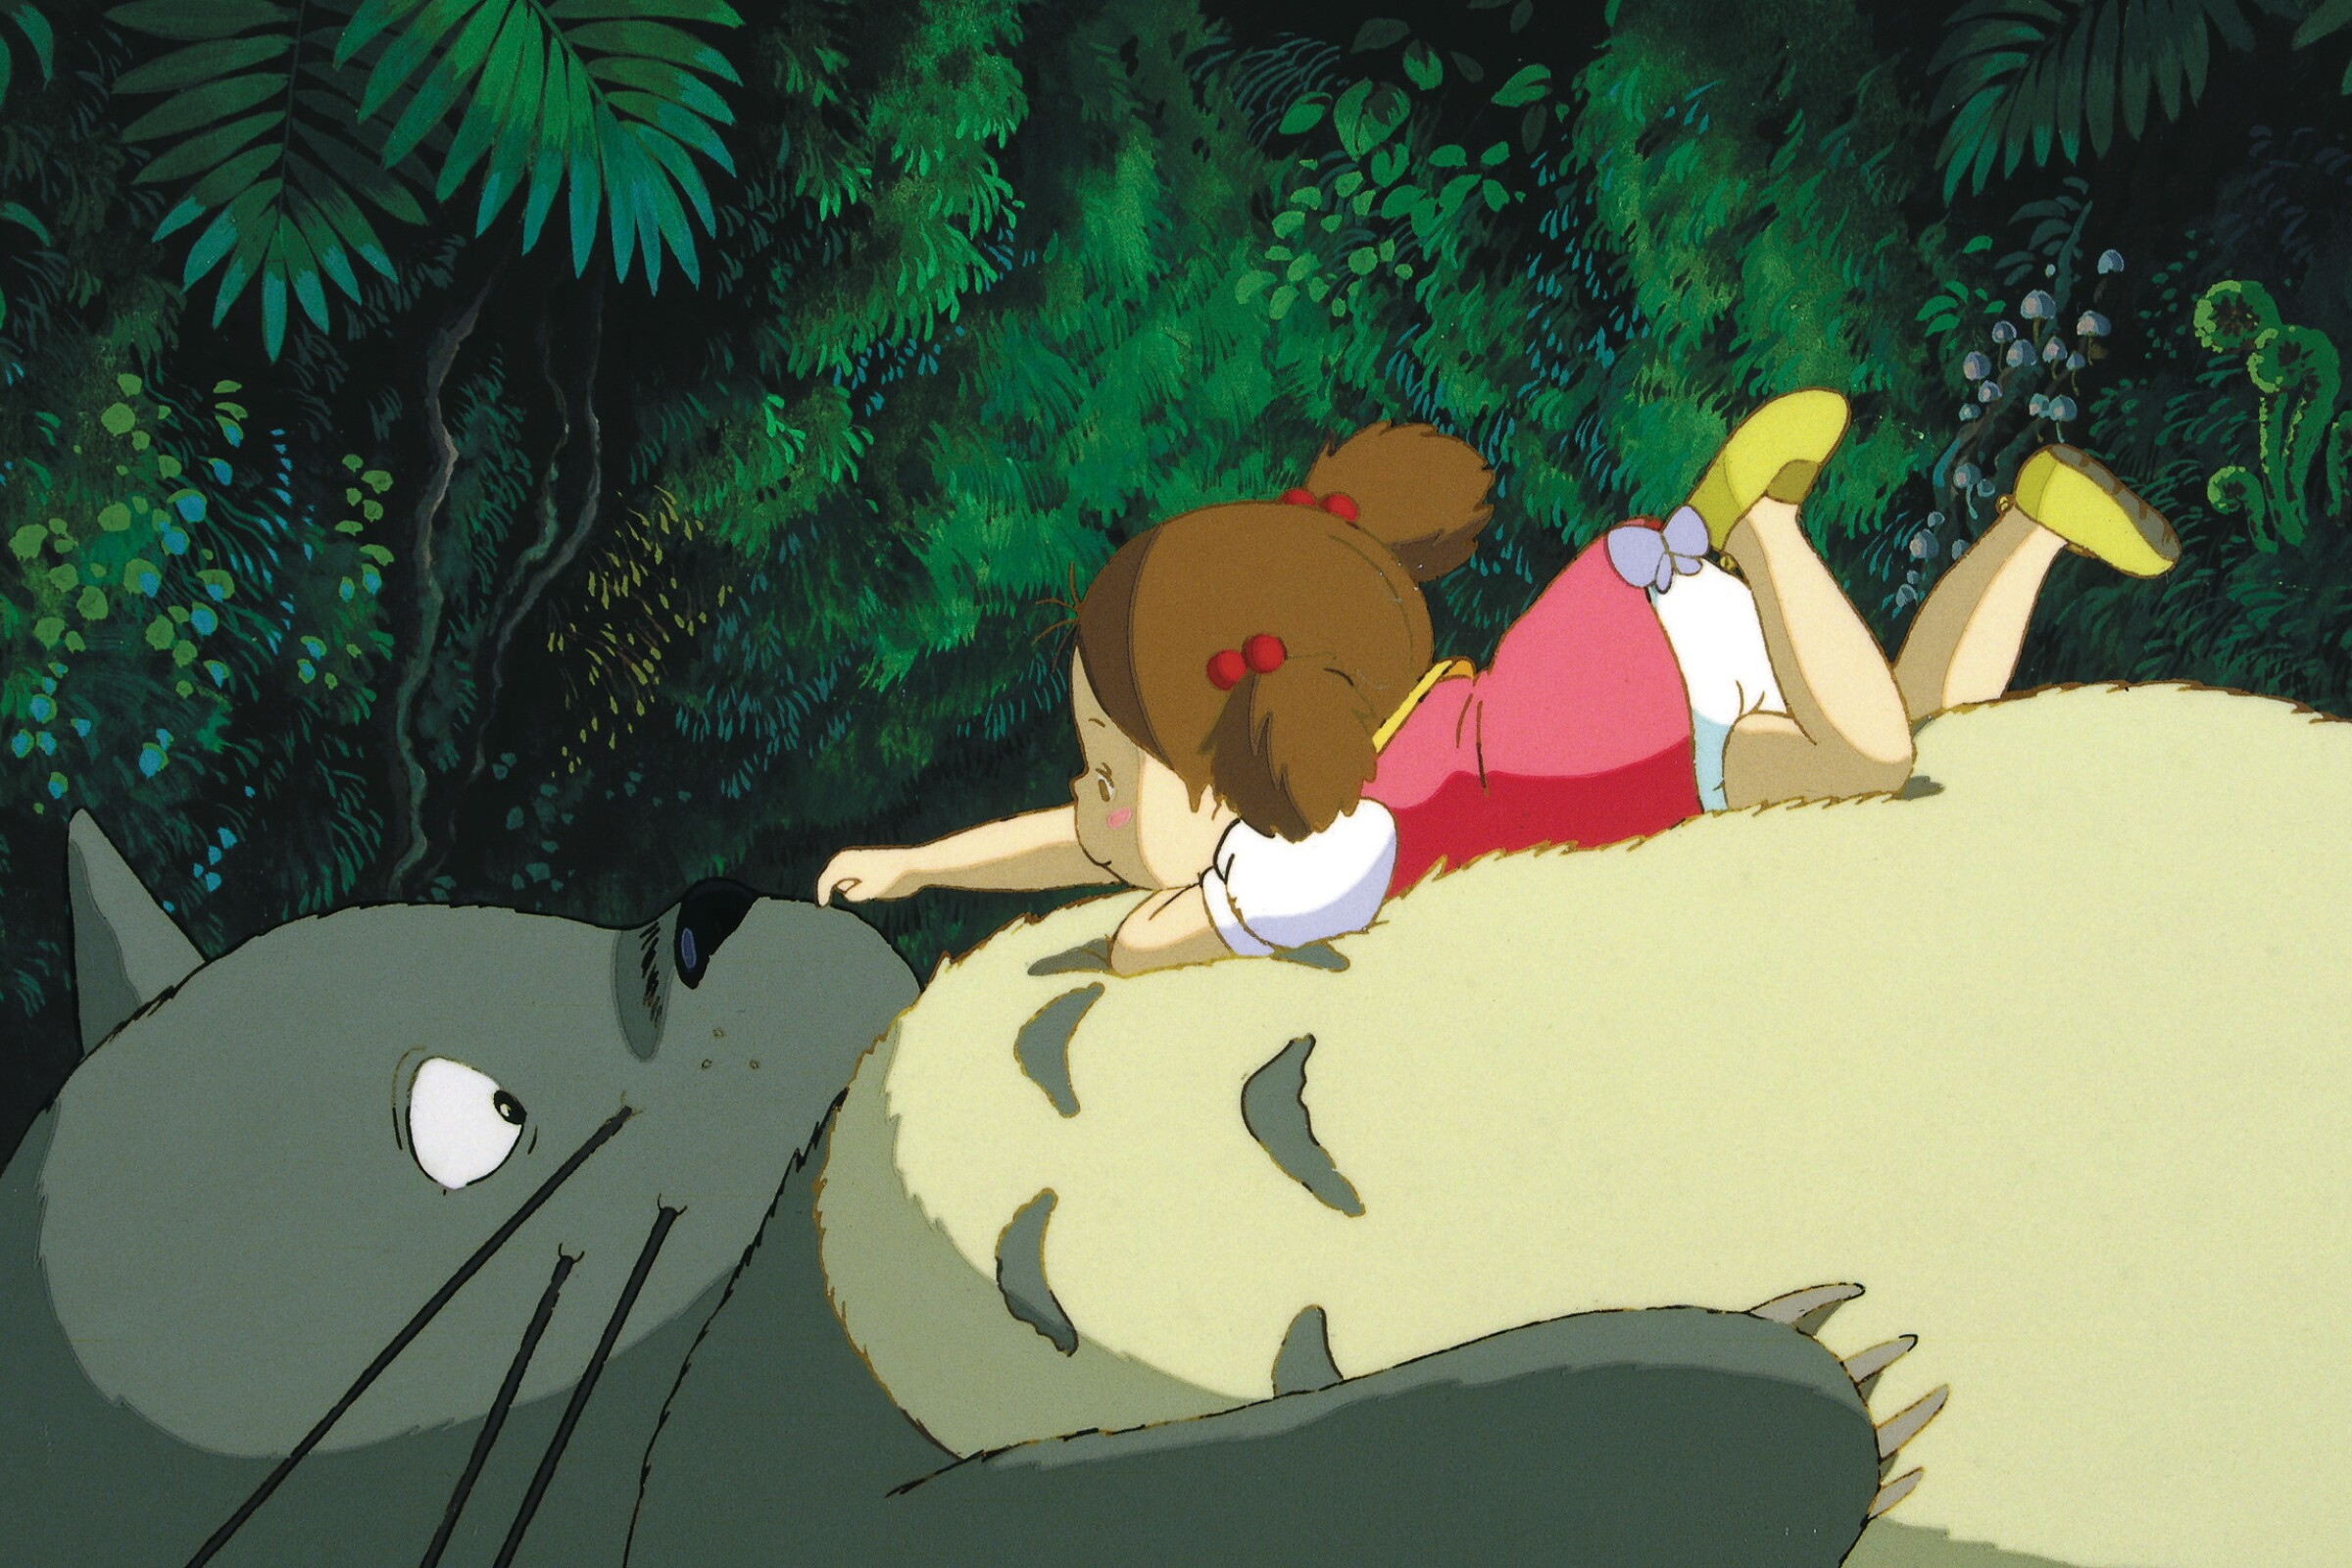 Totoro and Mei in 'My Neighbor Totoro'